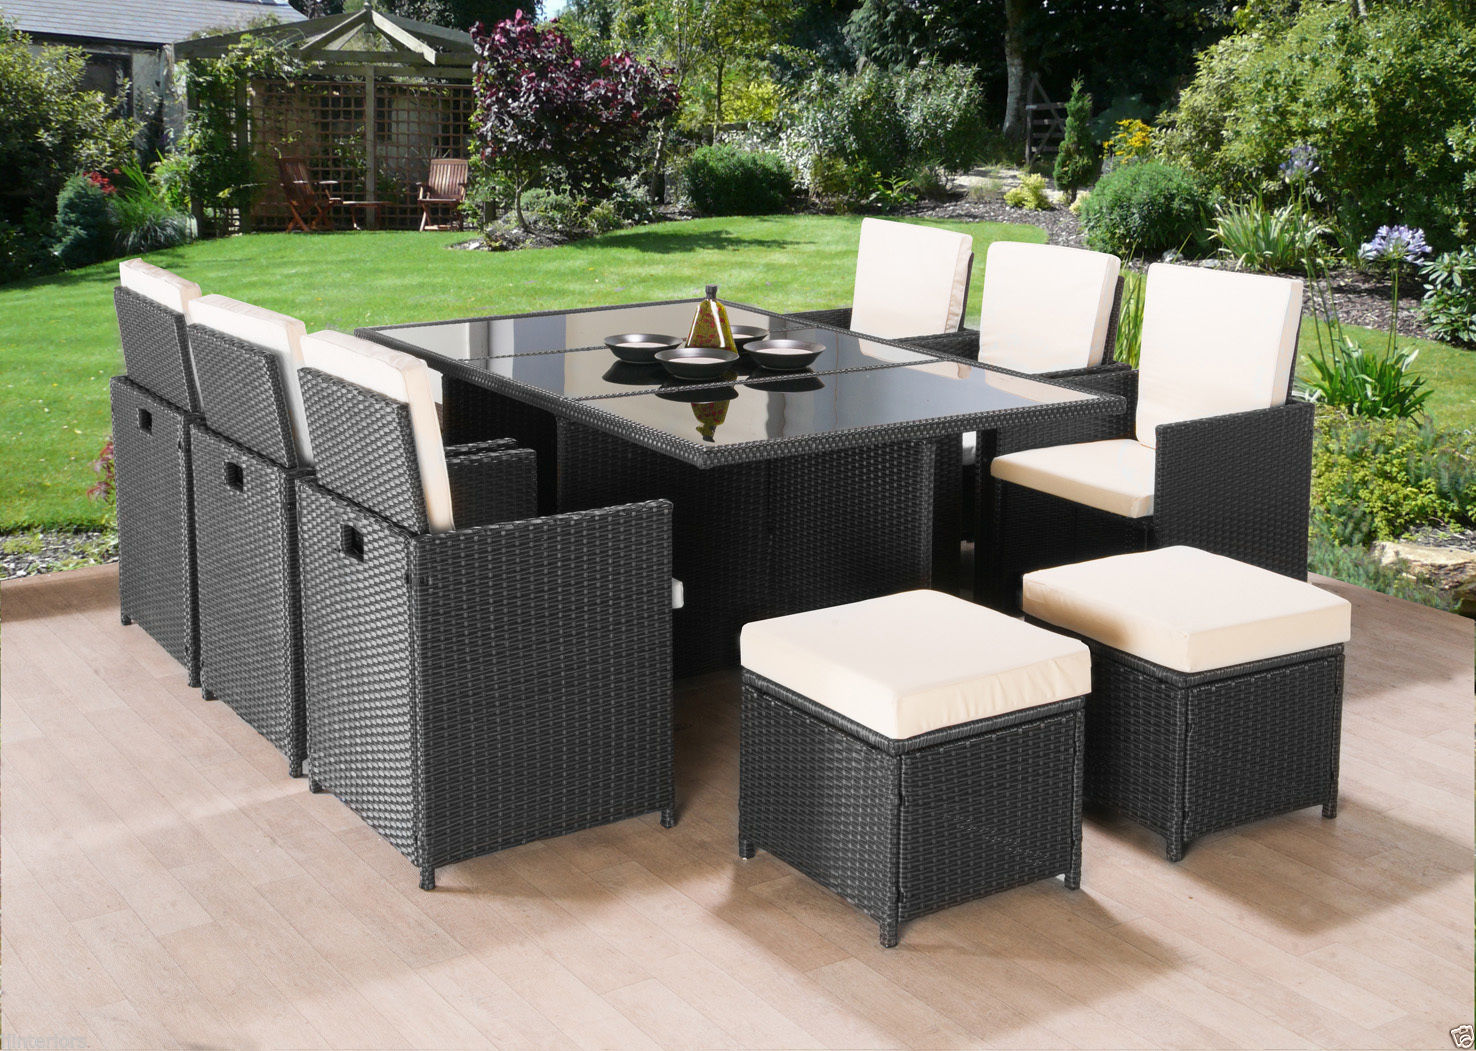 11pc Cube Rattan Garden Furniture Luxury Garden